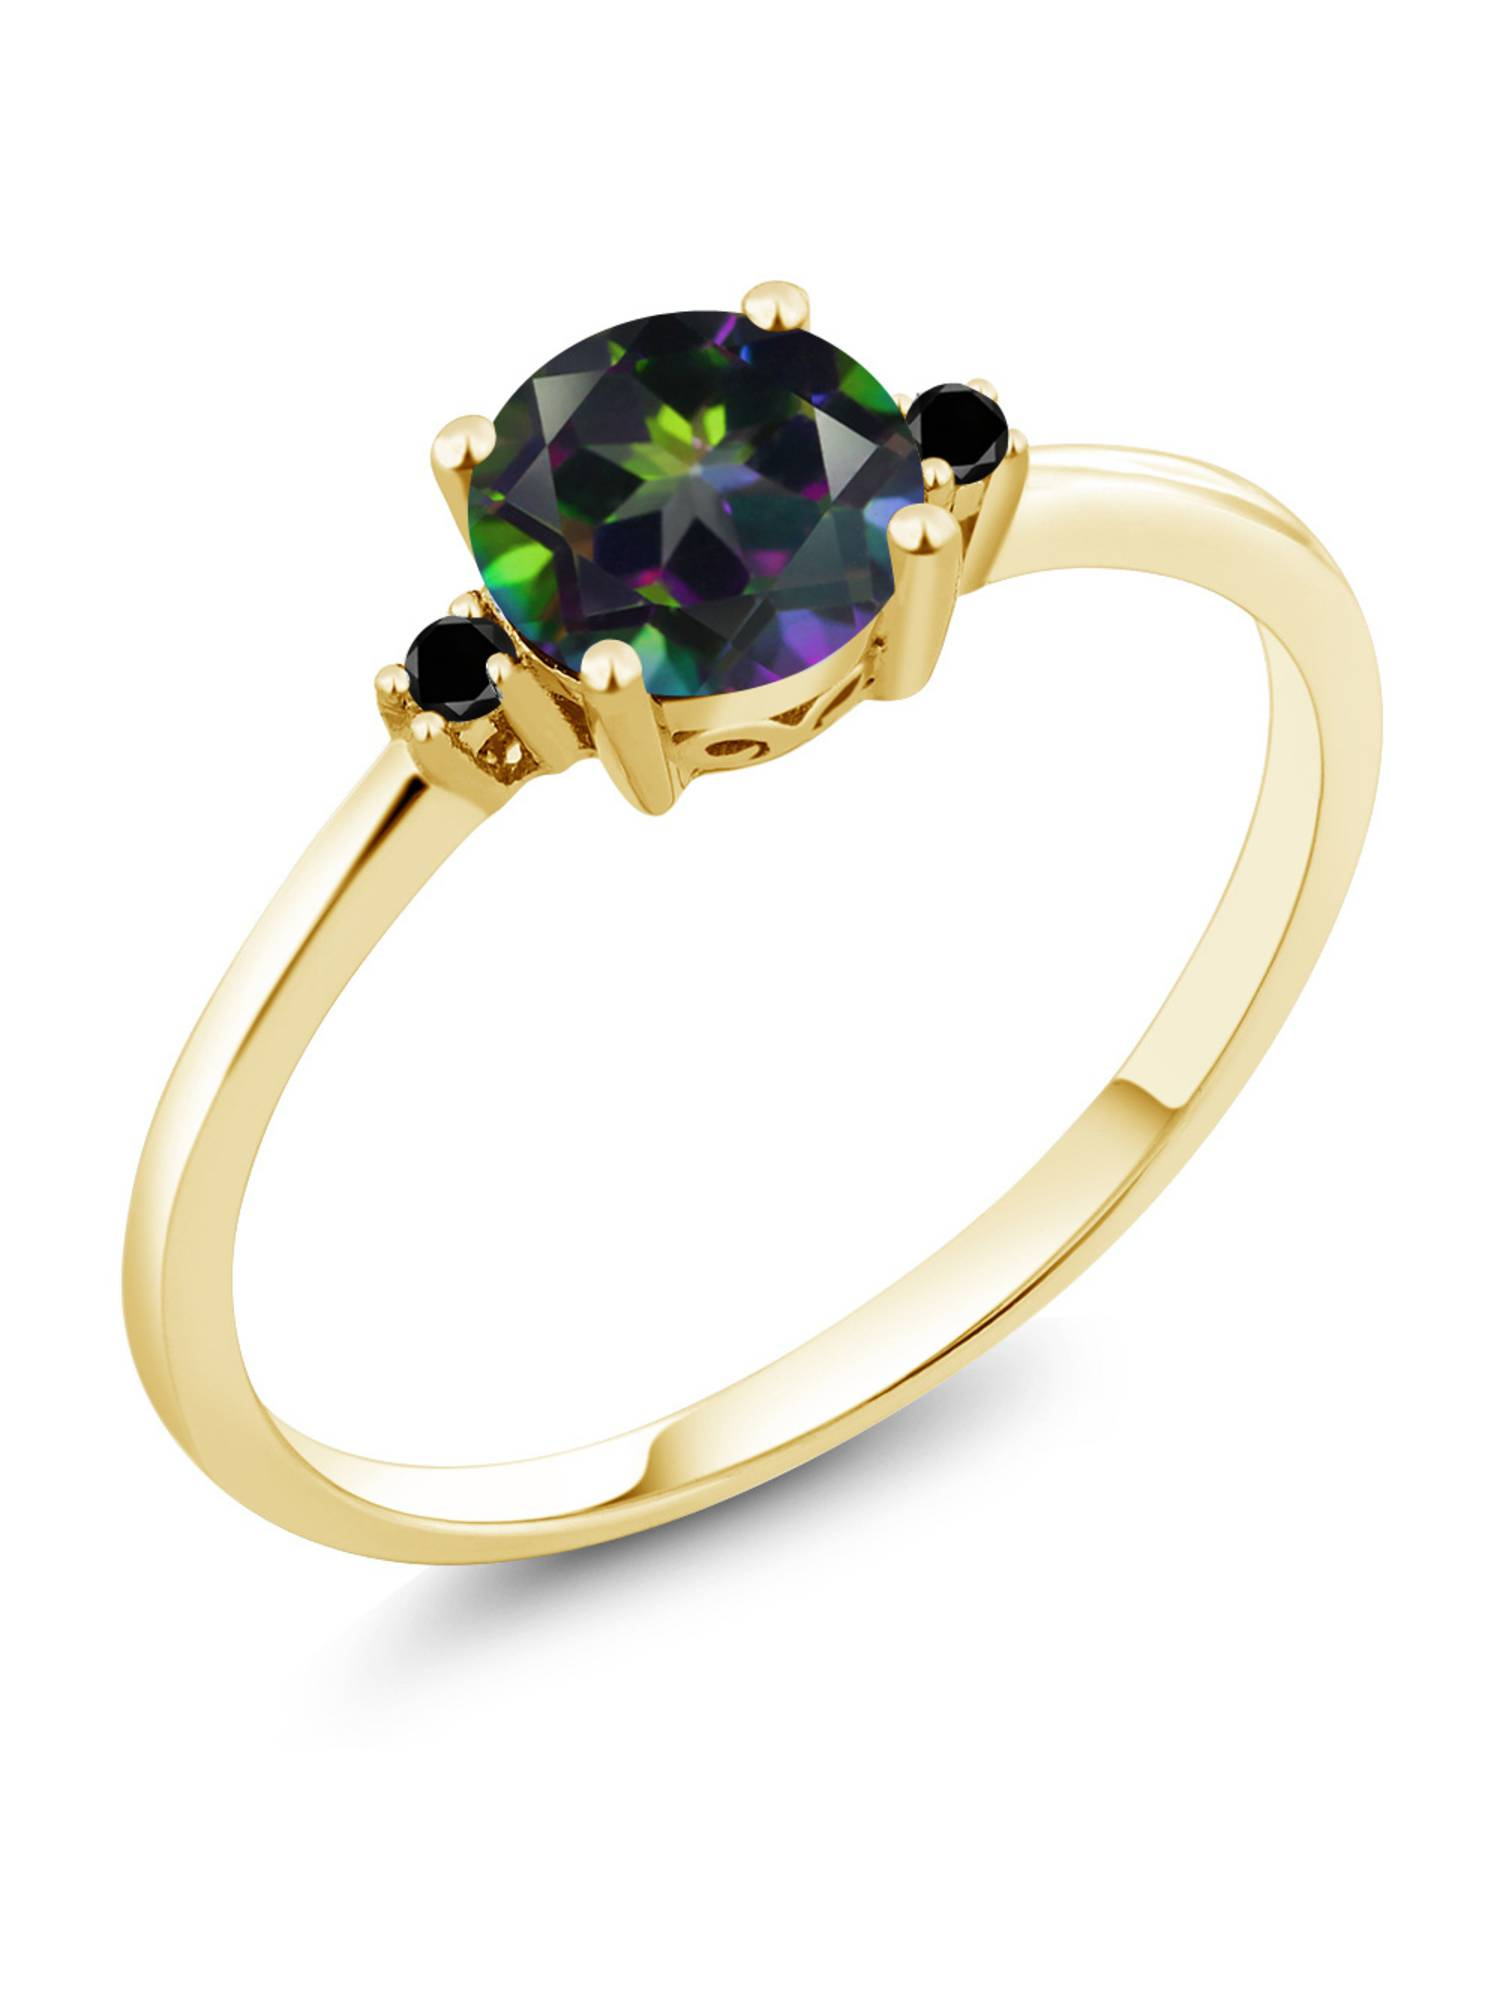 10K Yellow Gold Engagement Solitaire Ring set with 1.03 Ct Round Green Mystic Topaz and Black Diamonds by